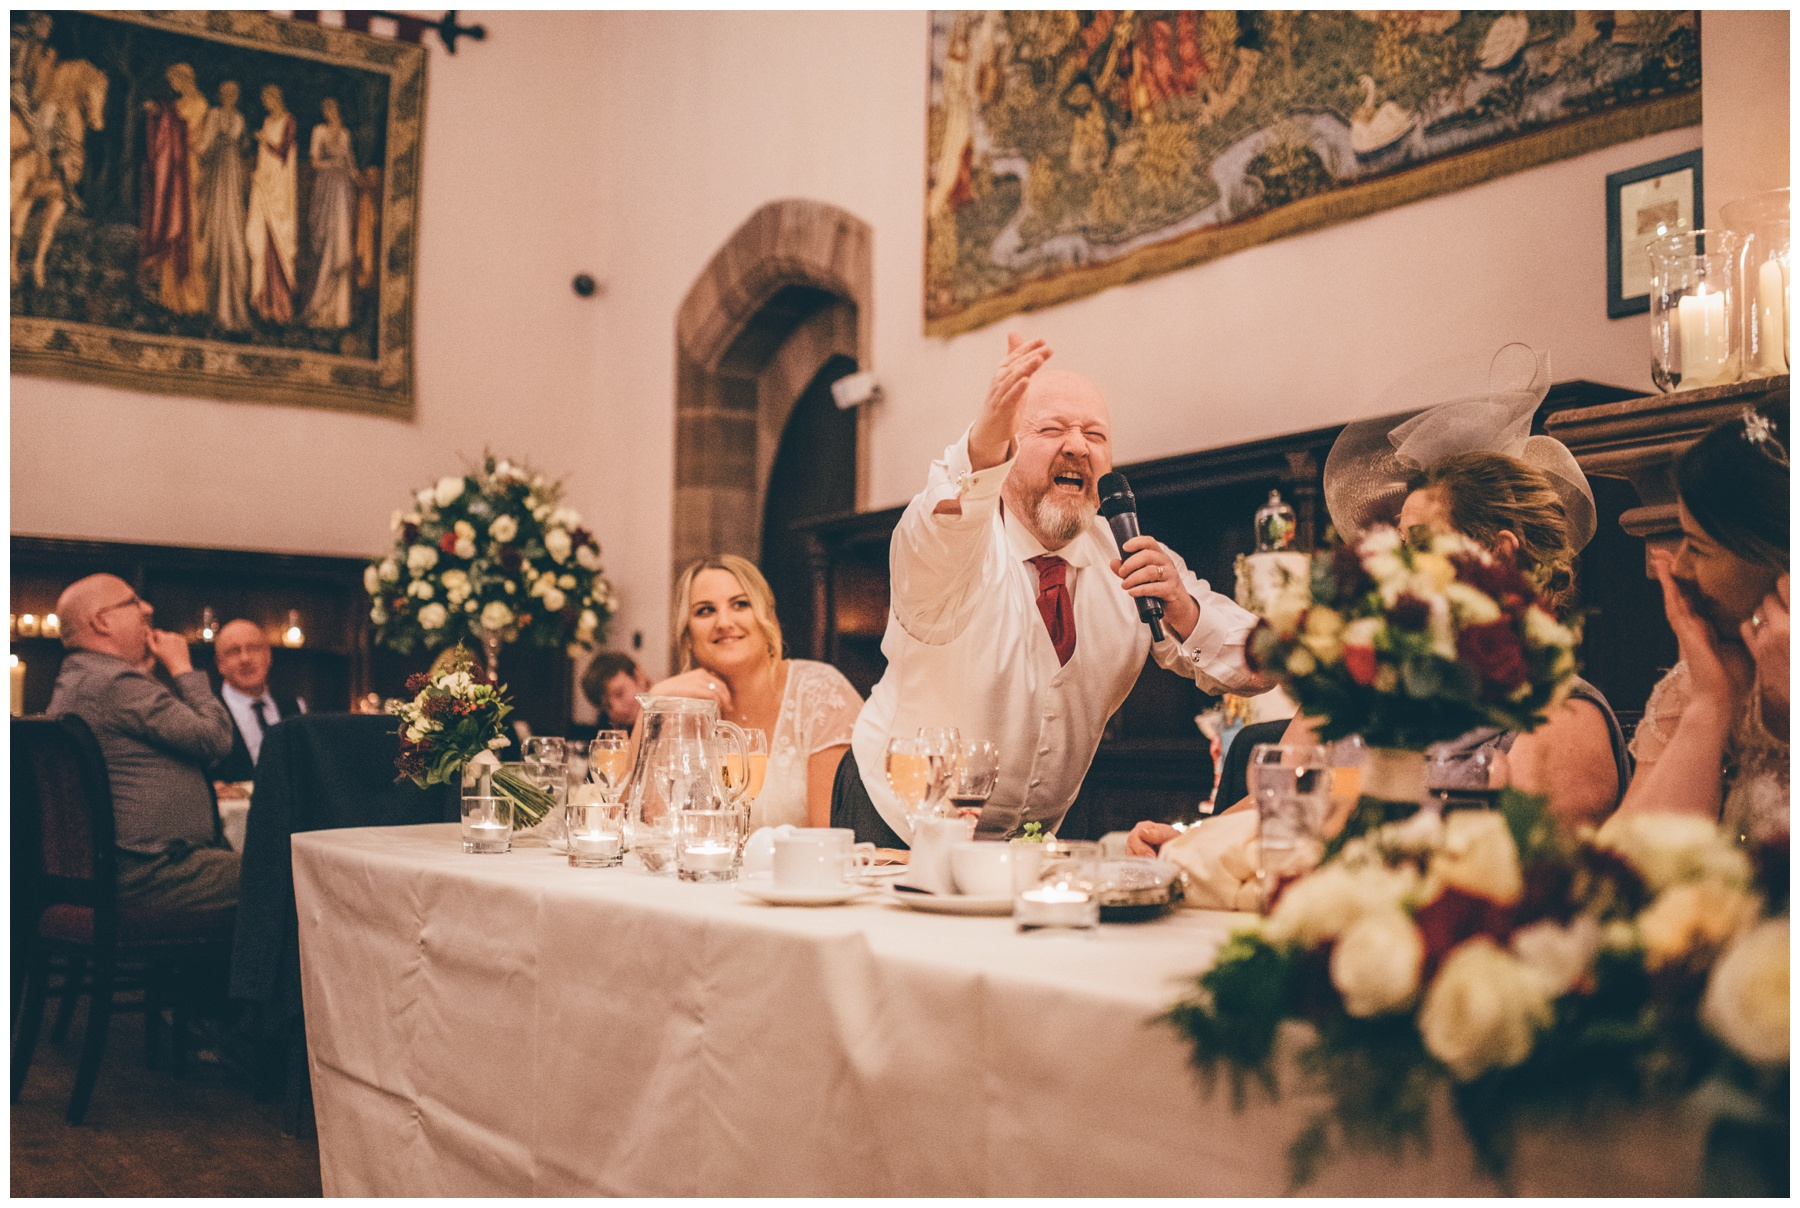 The bride's Dad makes a joke about the bride during his speech at Peckforton Castle in Cheshire.